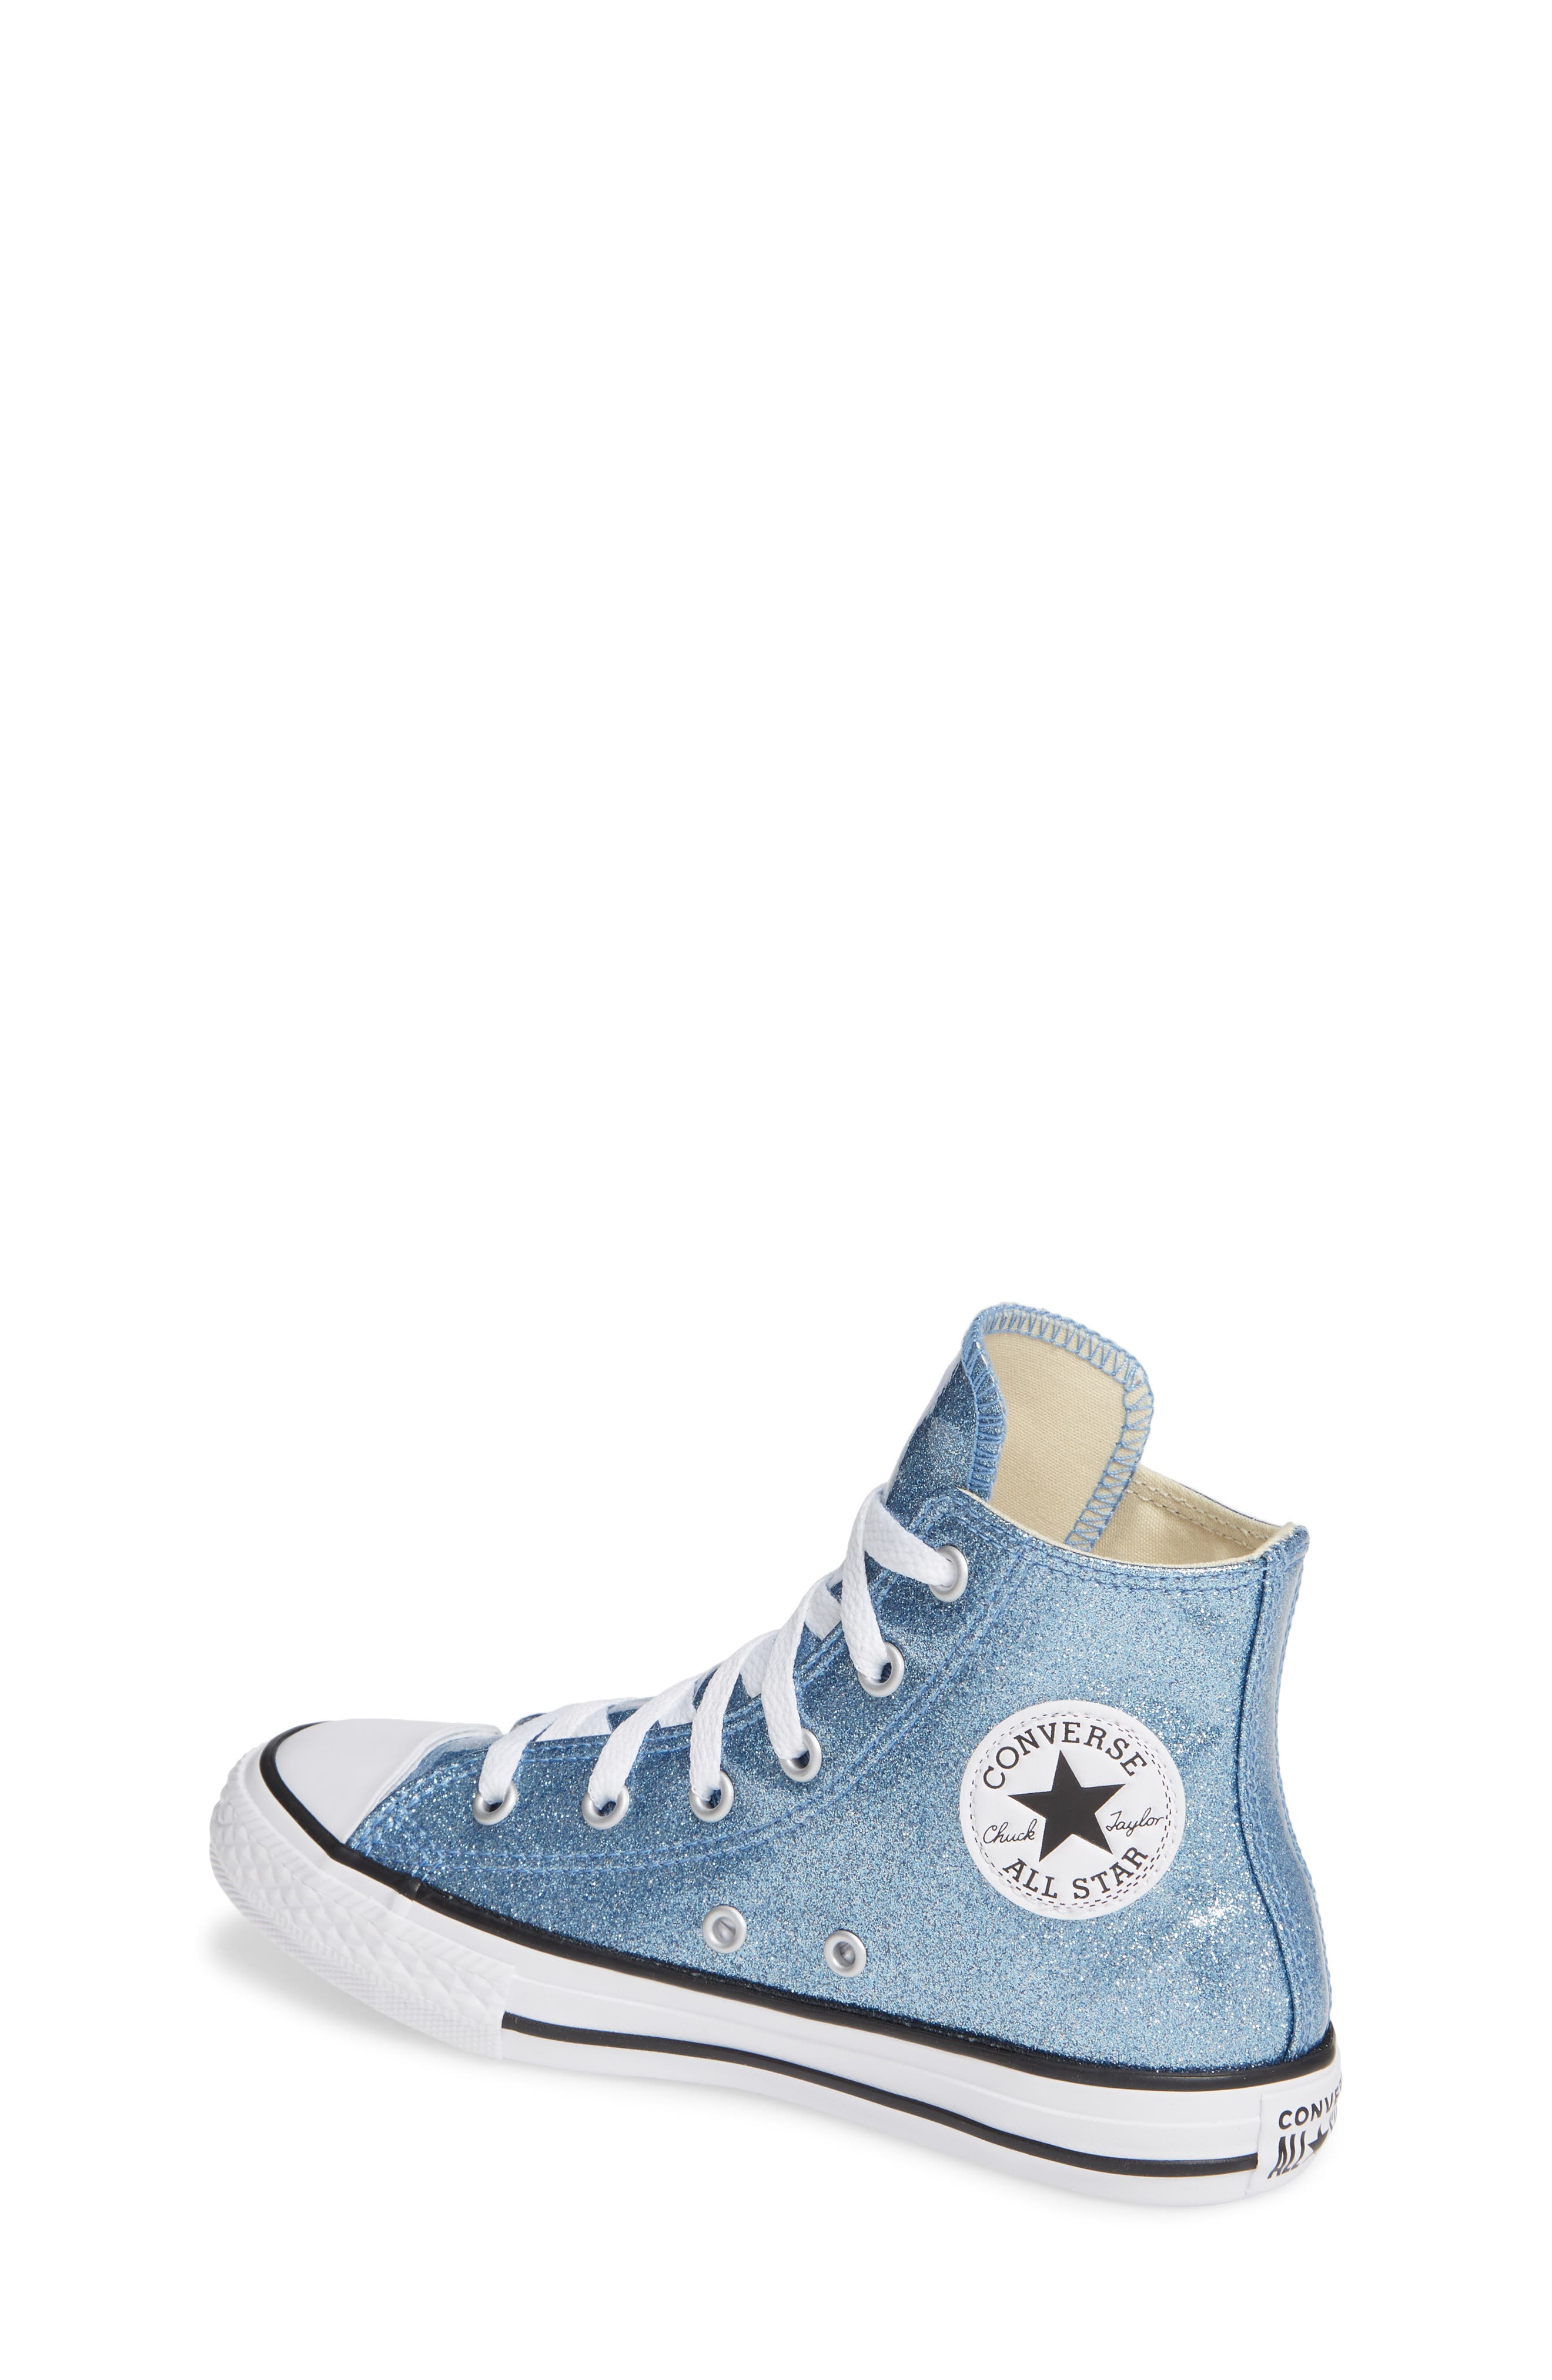 All Star<sup>®</sup> Glitter High Top Sneaker,                             Alternate thumbnail 2, color,                             Light Blue